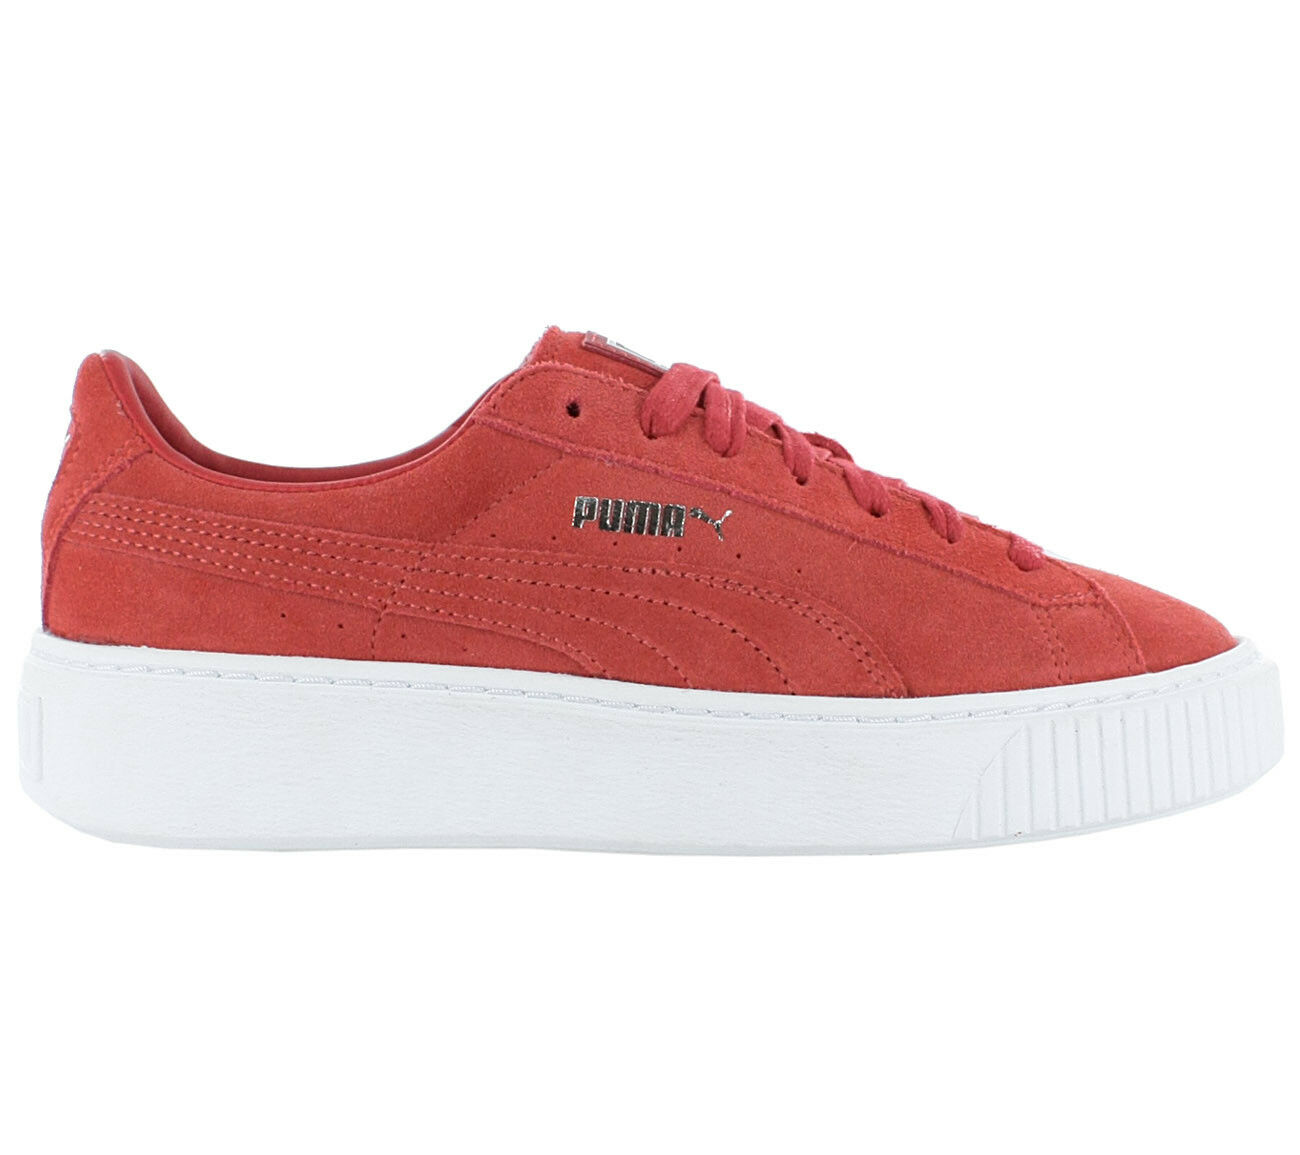 Puma Suede Platform Ladies Sneaker shoes Leather Red Gym shoes New 362223 03